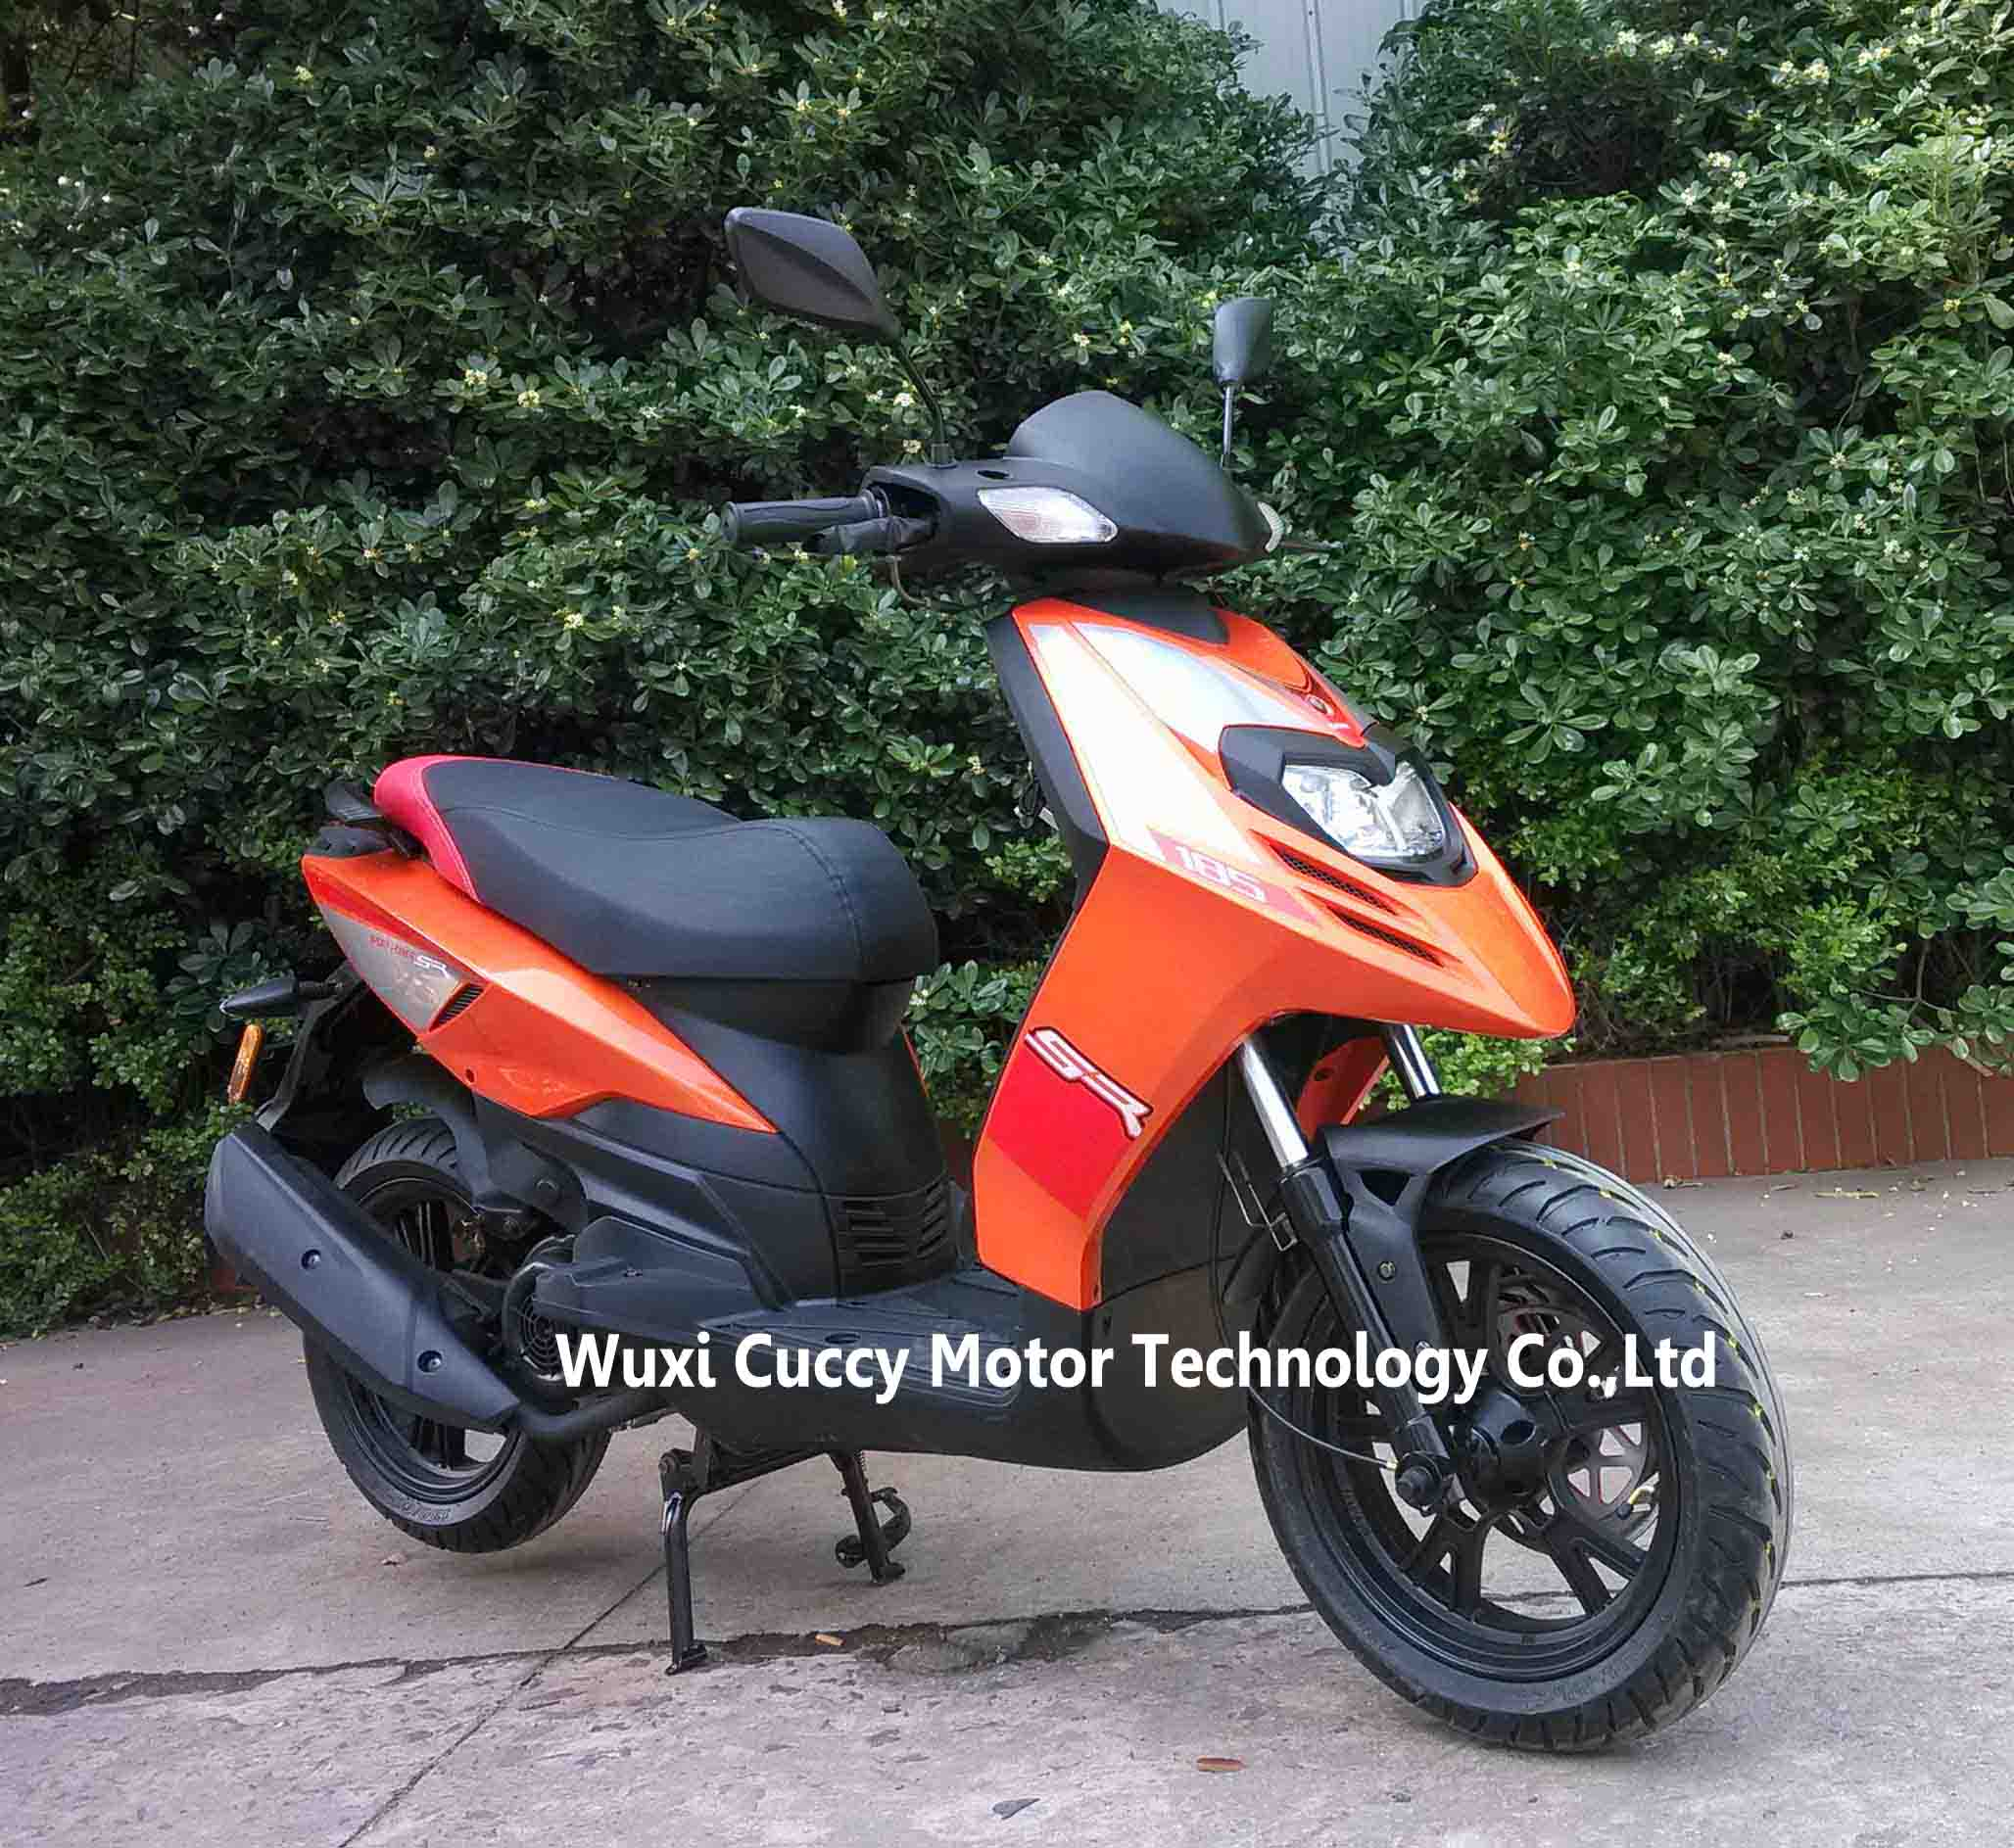 chinese motos moto scooter 125cc/150 cc/150cc/125 cc 13 inches tire gasoline gas scooters (Cyclone)